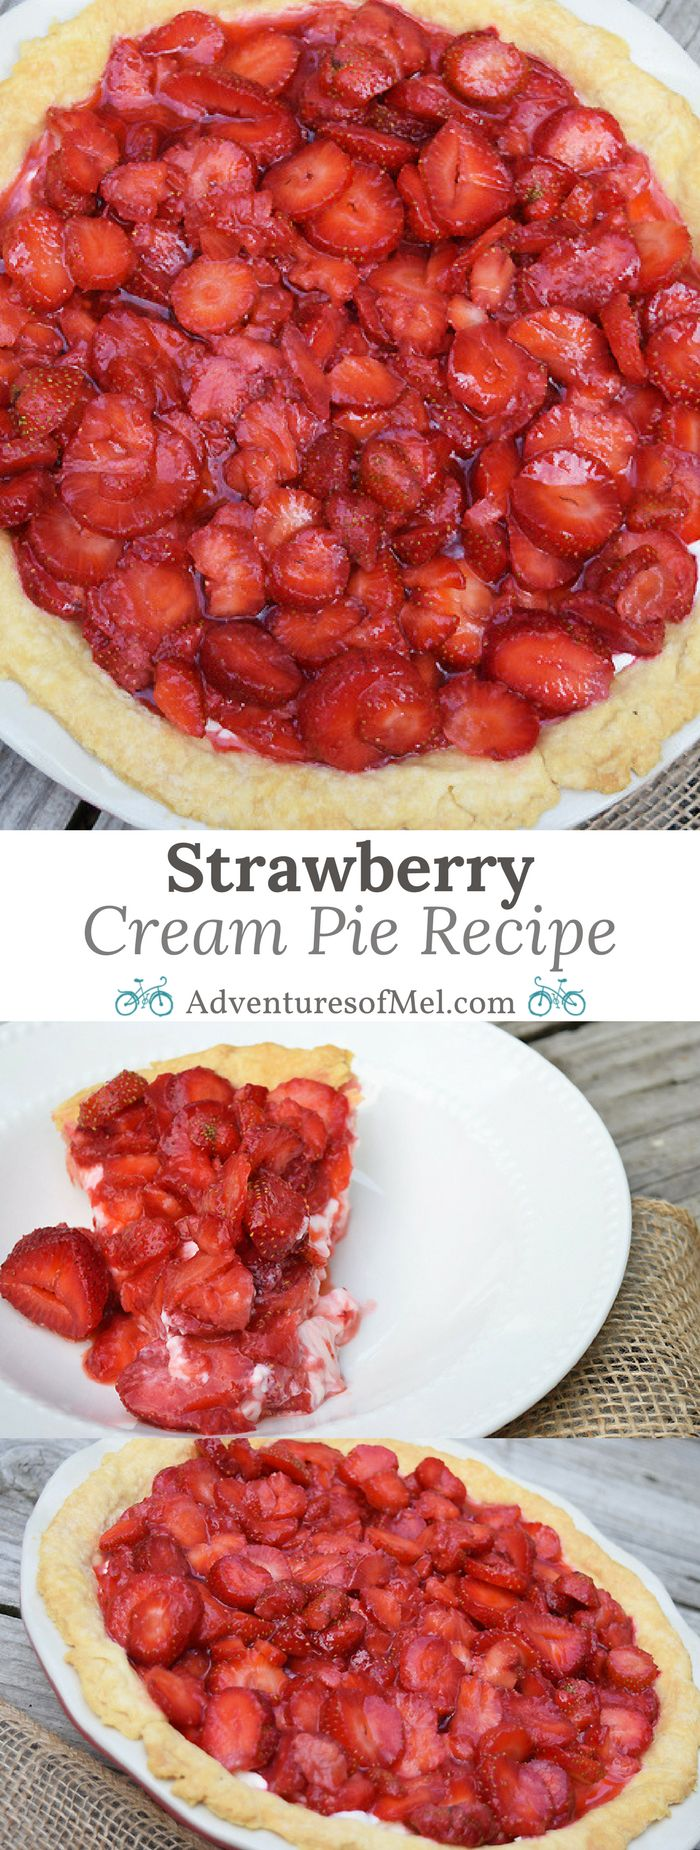 Can't get enough strawberry recipes? Make the most of berry season with a delicious Strawberry Cream Pie. Strawberries and cream cheese make a delicious combo!